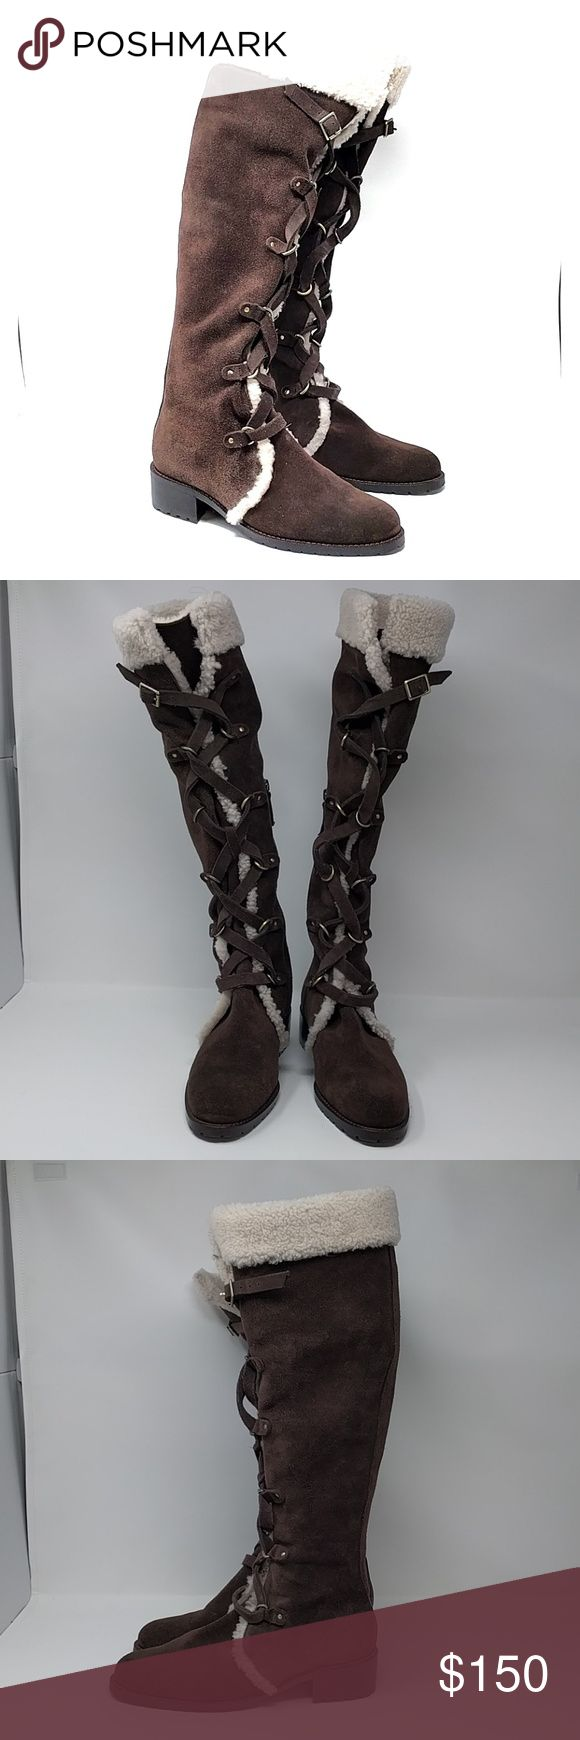 """Delman 7.5 Suede Shearling Tall Boots NEW Delman Strut Lace-Up Suede Boot, 7.5 Dark Brown NEW w/o box msrp $495  Clearance shoes from Nordstrom Rack have been tried on but not worn.  Please examine photos for condition.   - Round toe  - Suede construction - Genuine shearling trimmed - Lacing detail - Partial side zip closure - Lightly padded insole - Stacked heel - Lug sole - Approx. 17.5"""" shaft height, 17.5"""" opening circumference - Approx. 1.5"""" heel  - Materials: Suede/genuine shearling…"""